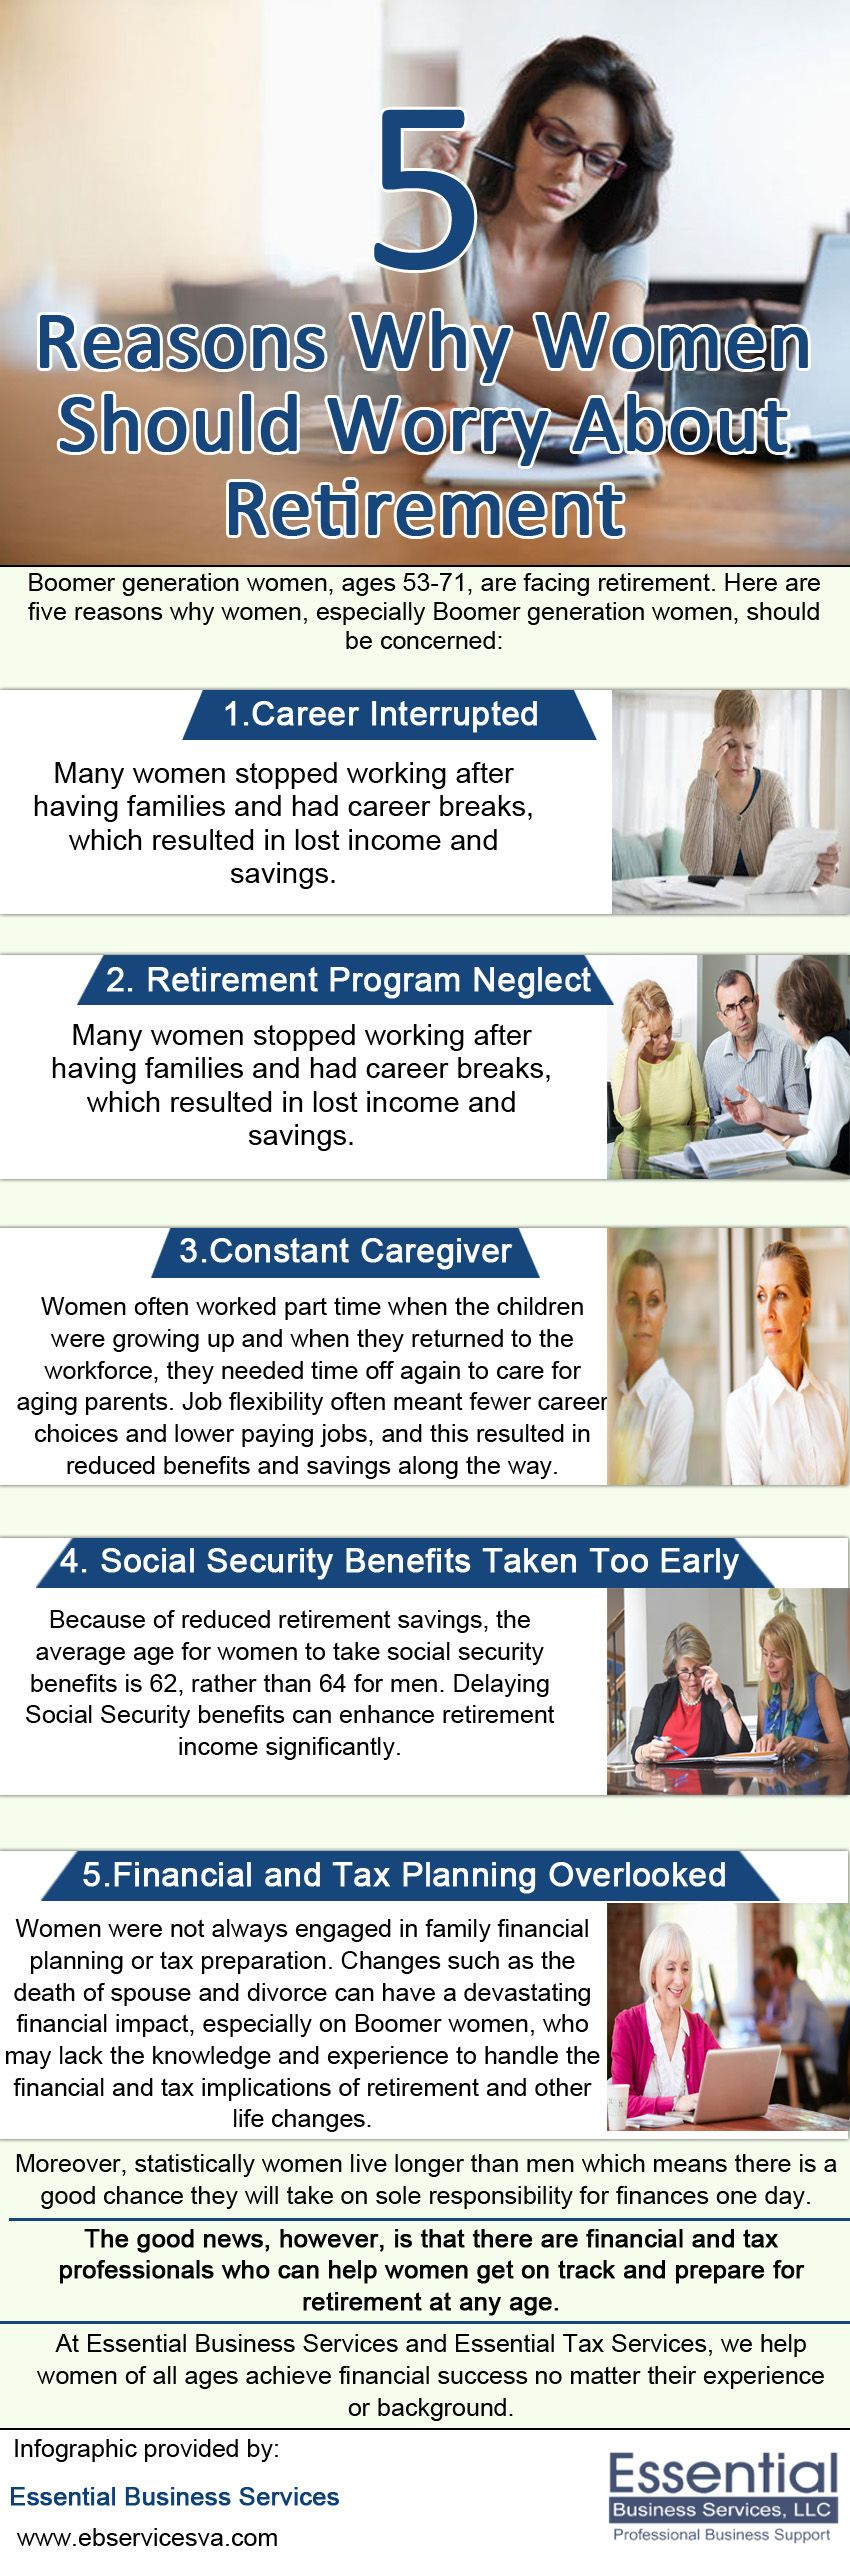 Retirement Program Neglect Families Often Used WomenS Income For